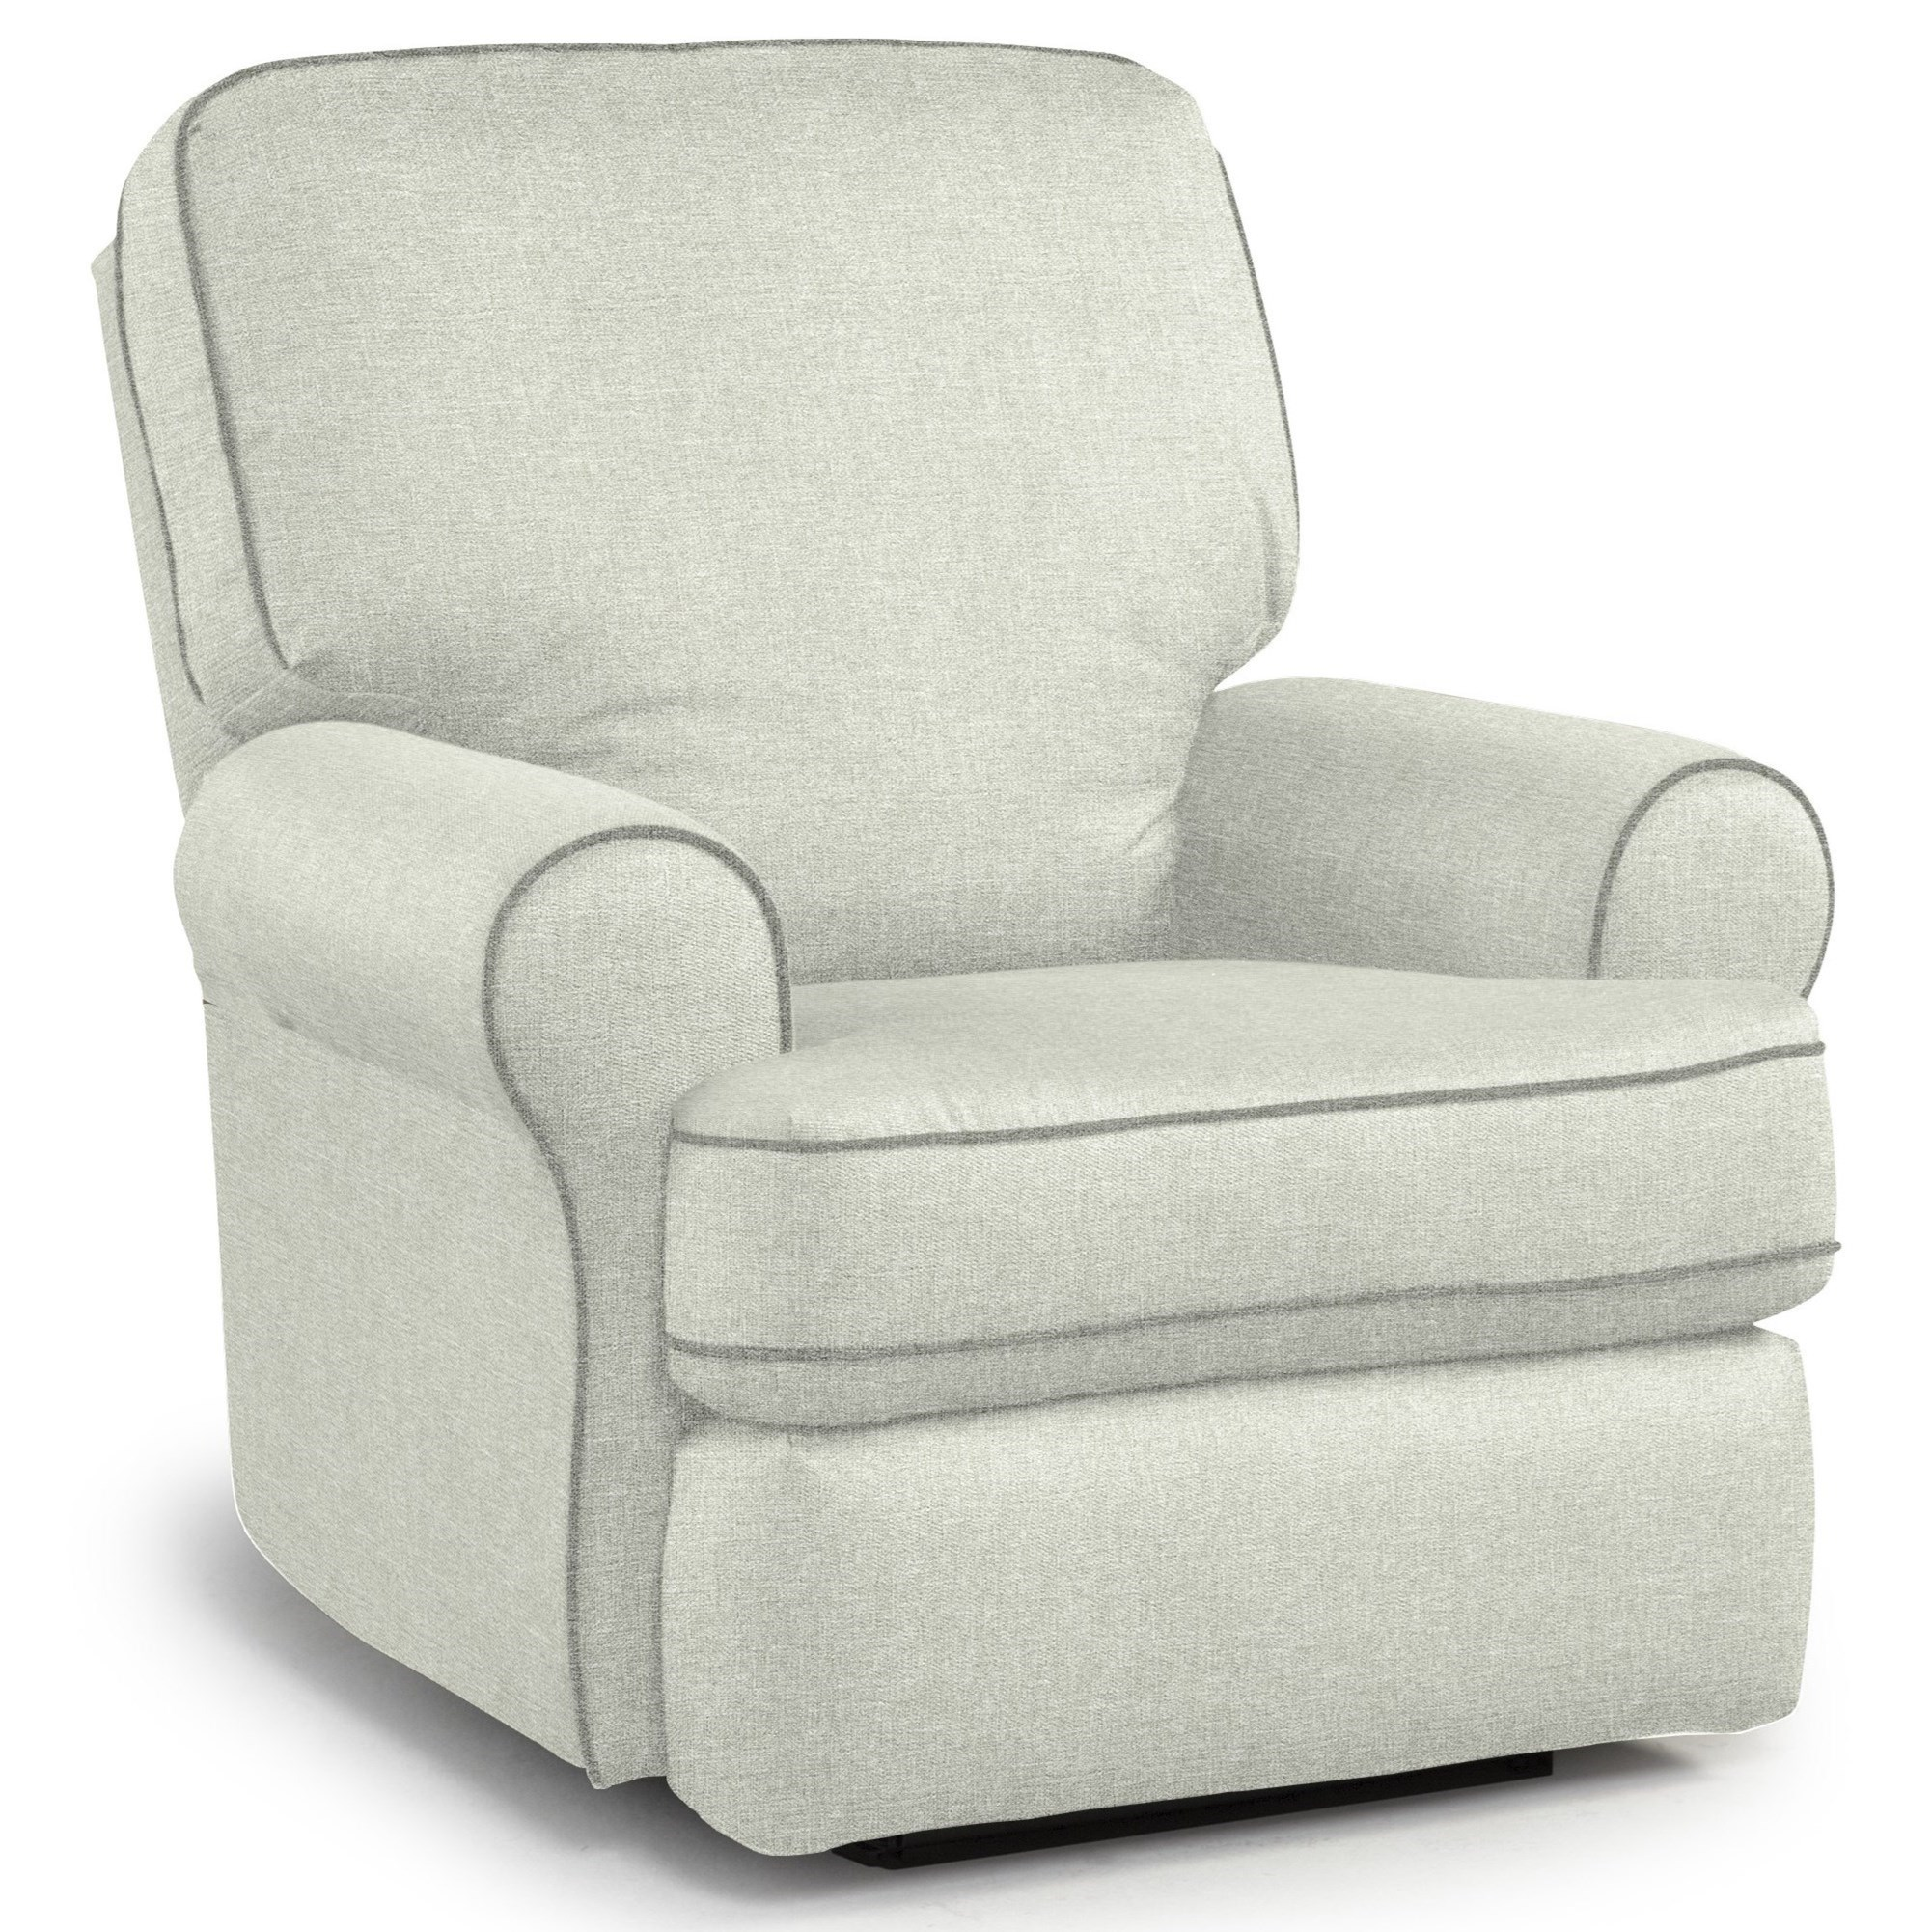 Tryp Power Swivel Glider Recliner by Best Home Furnishings at SuperStore